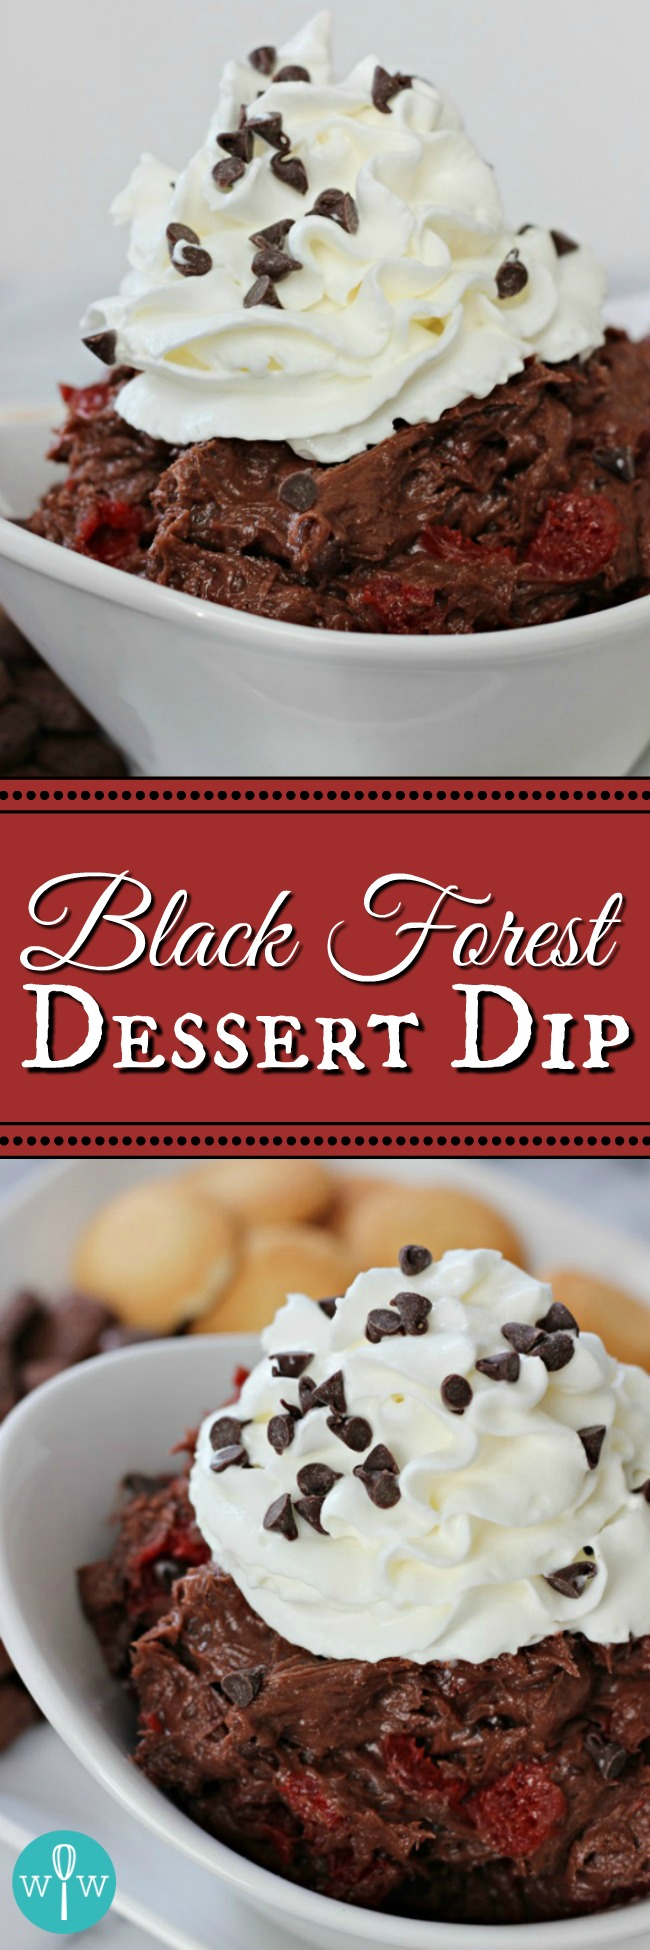 Black Forest Dessert Dip – An easy dessert dip reminiscent of the classic German cake. A luscious combination of chocolate, cherries, & whipped cream! | www.worthwhisking.com